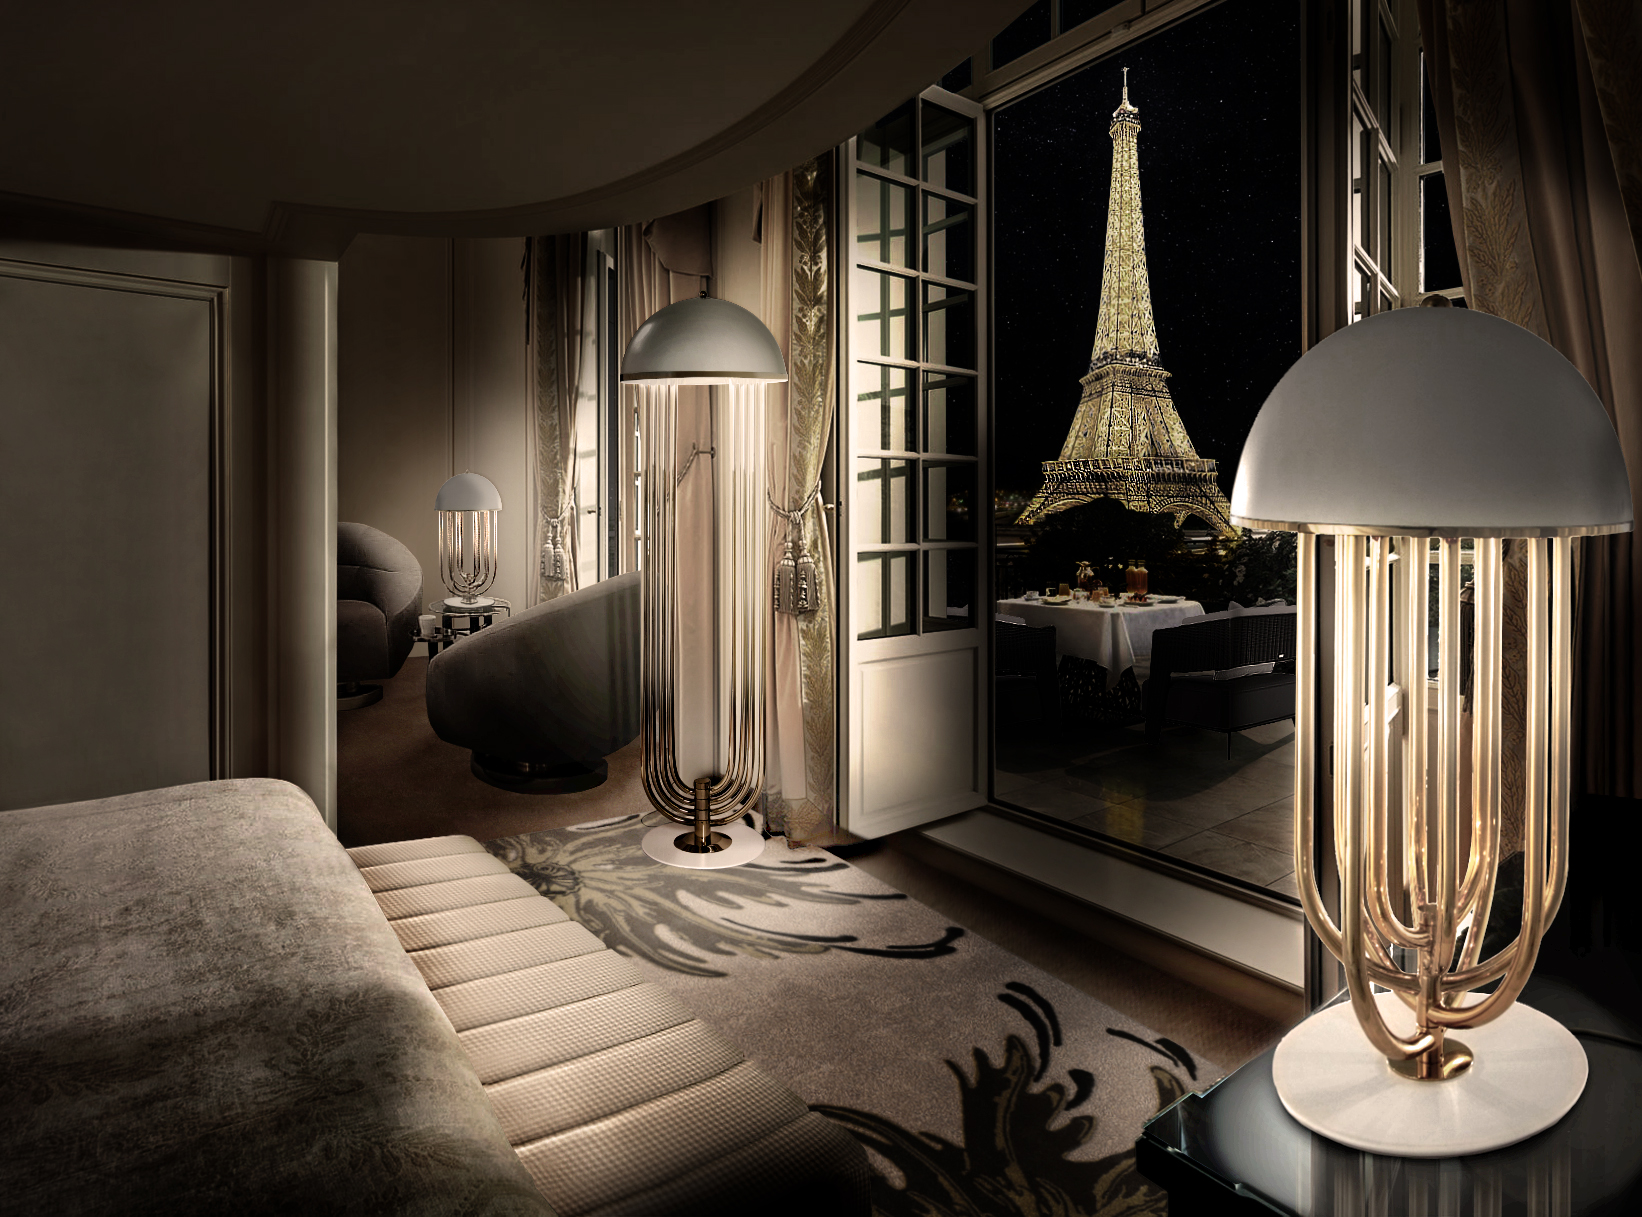 CAPTIVATING PARIS VIEW AT NIGHT FROM BEDROOM